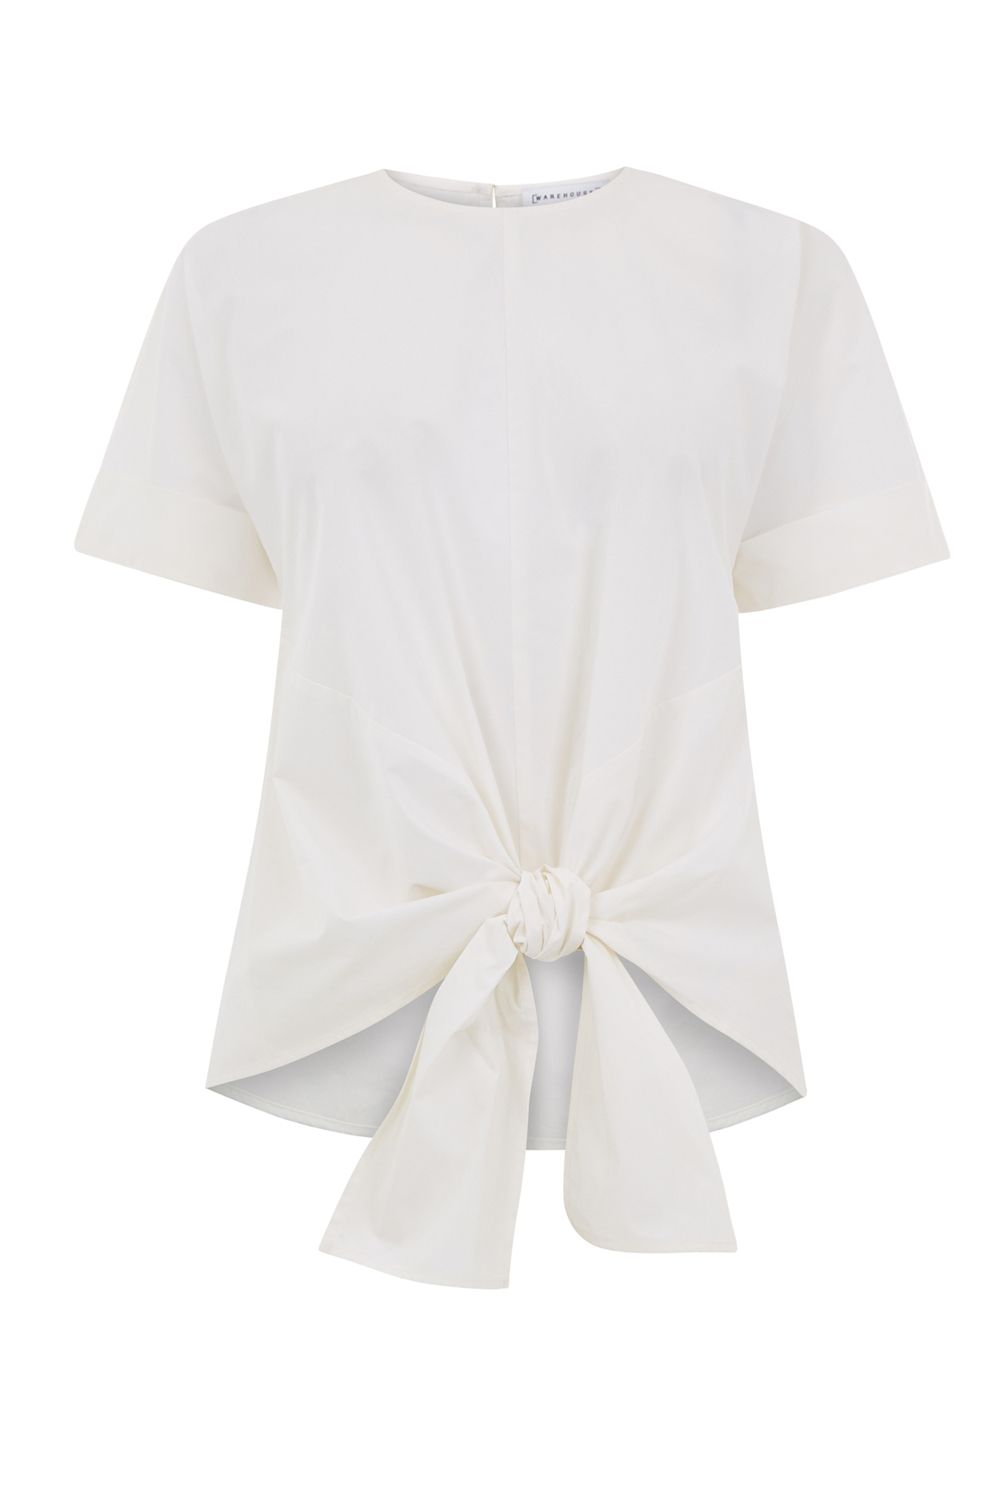 Warehouse Tie Front Cotton Top, White